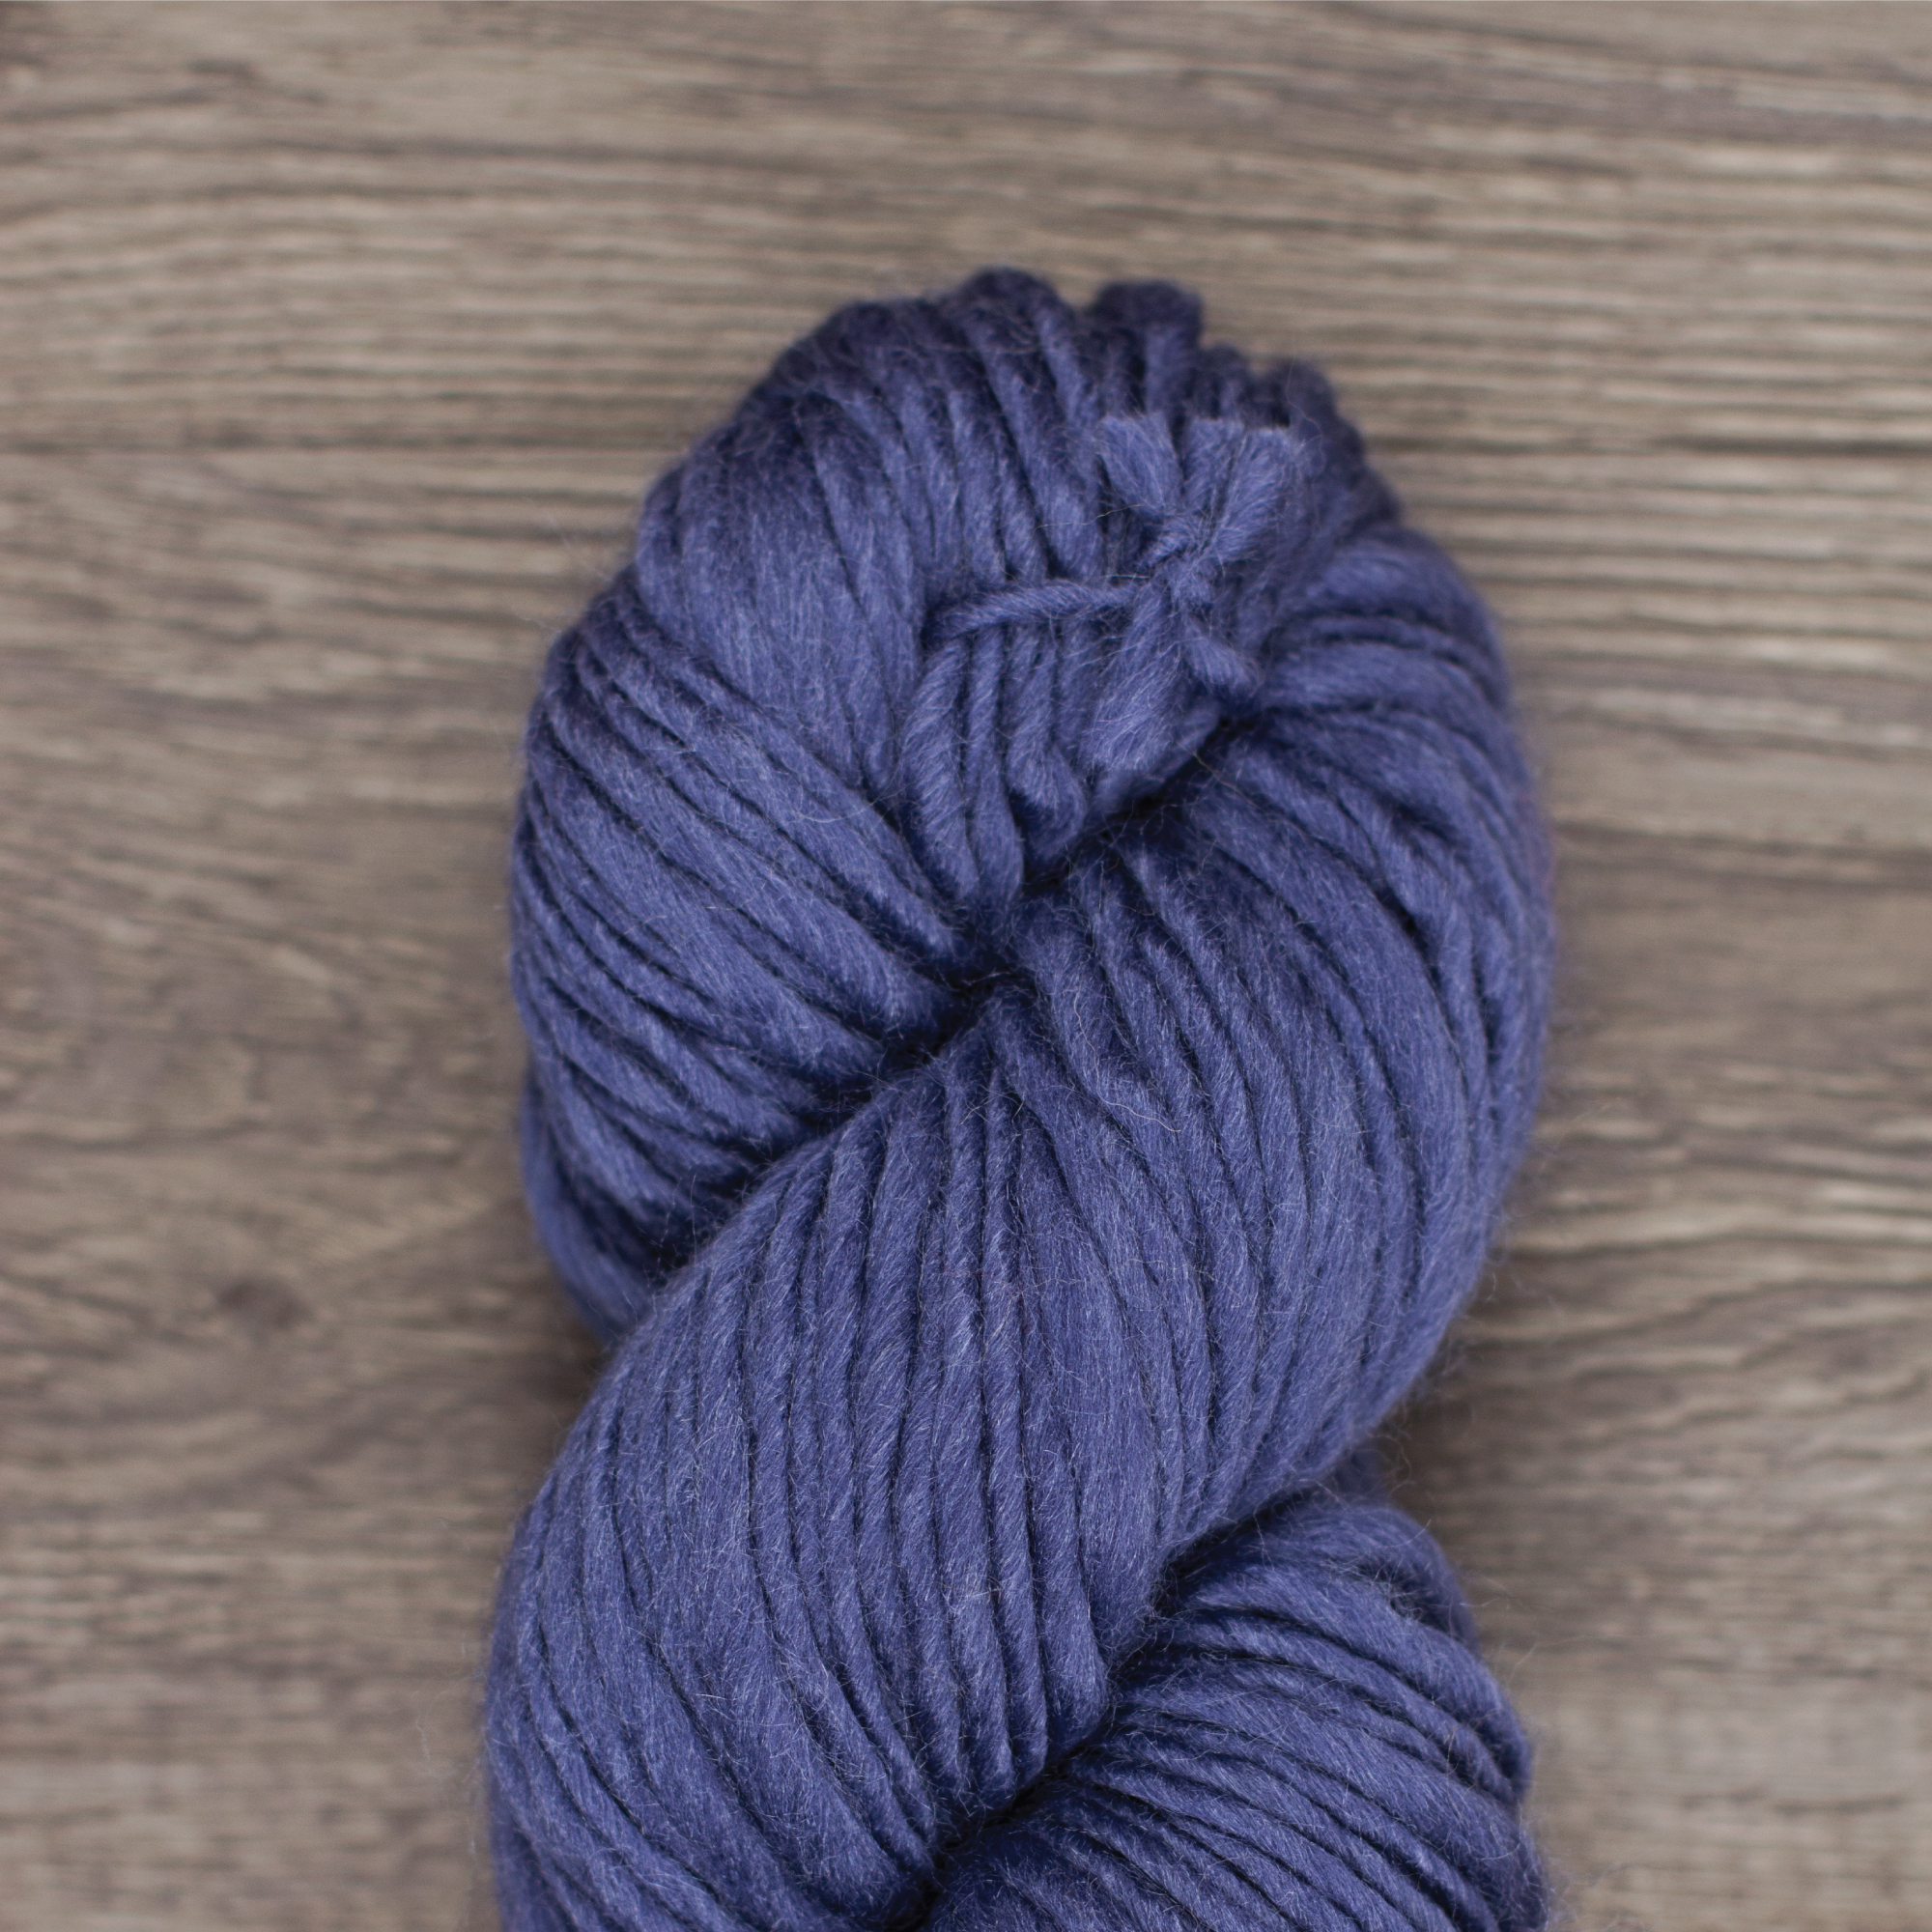 VIVACE by Cloud9 Fibers — 900223 | ENIGMA